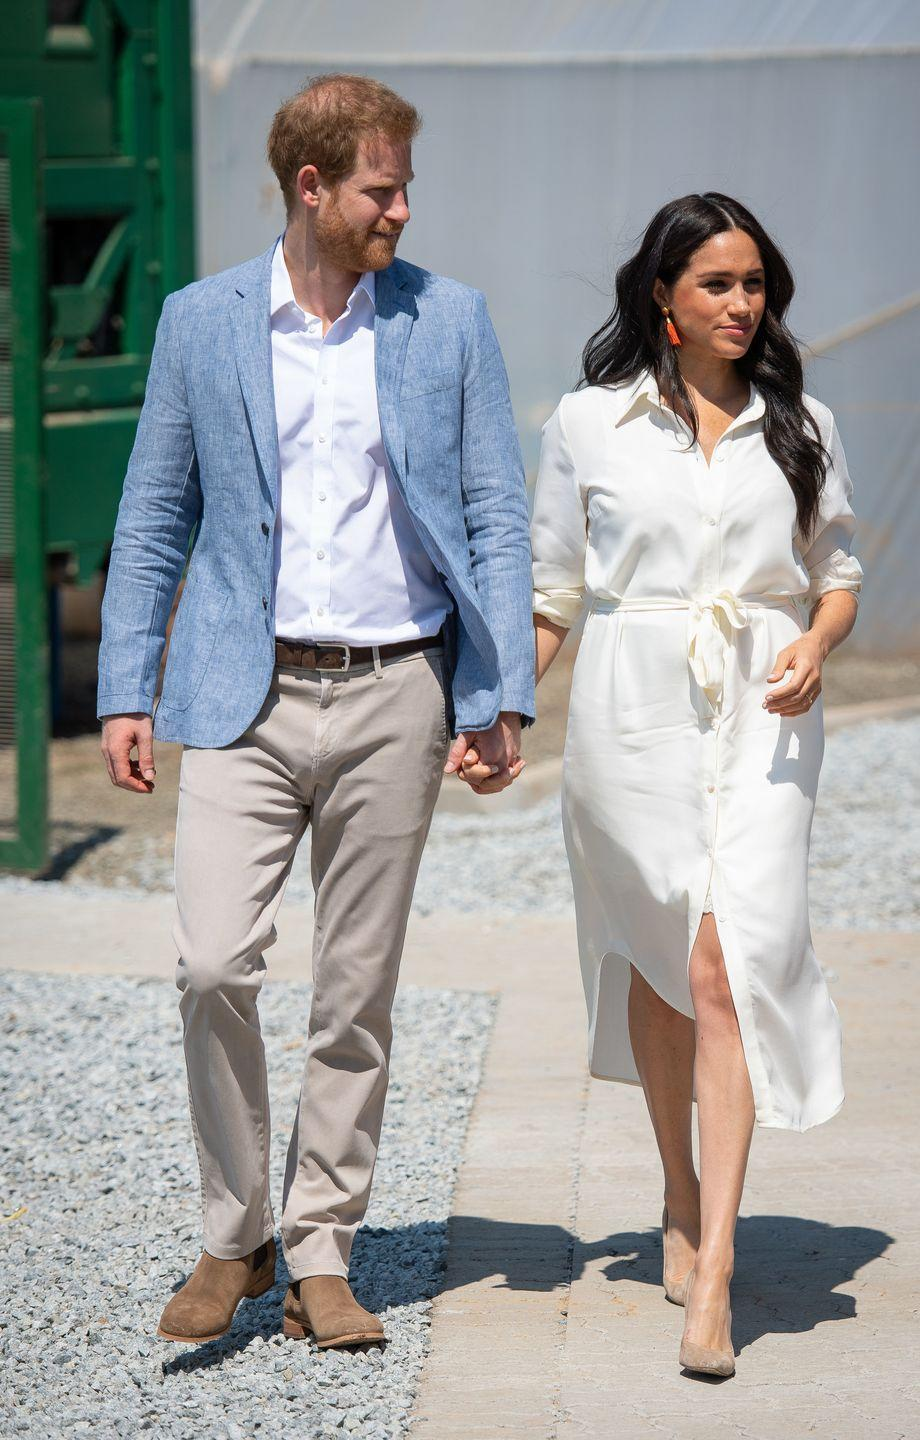 "<p>The Duke and Duchess of Sussex continued their royal tour with a visit to Tembisa township outside Johannesburg. <a href=""https://www.townandcountrymag.com/style/fashion-trends/a29300614/meghan-markle-white-dress-pink-earrings-johannesburg/"" rel=""nofollow noopener"" target=""_blank"" data-ylk=""slk:Meghan wore a white shirt dress"" class=""link rapid-noclick-resp"">Meghan wore a white shirt dress</a> for the event, paired with bright pink earrings and nude heels. </p>"